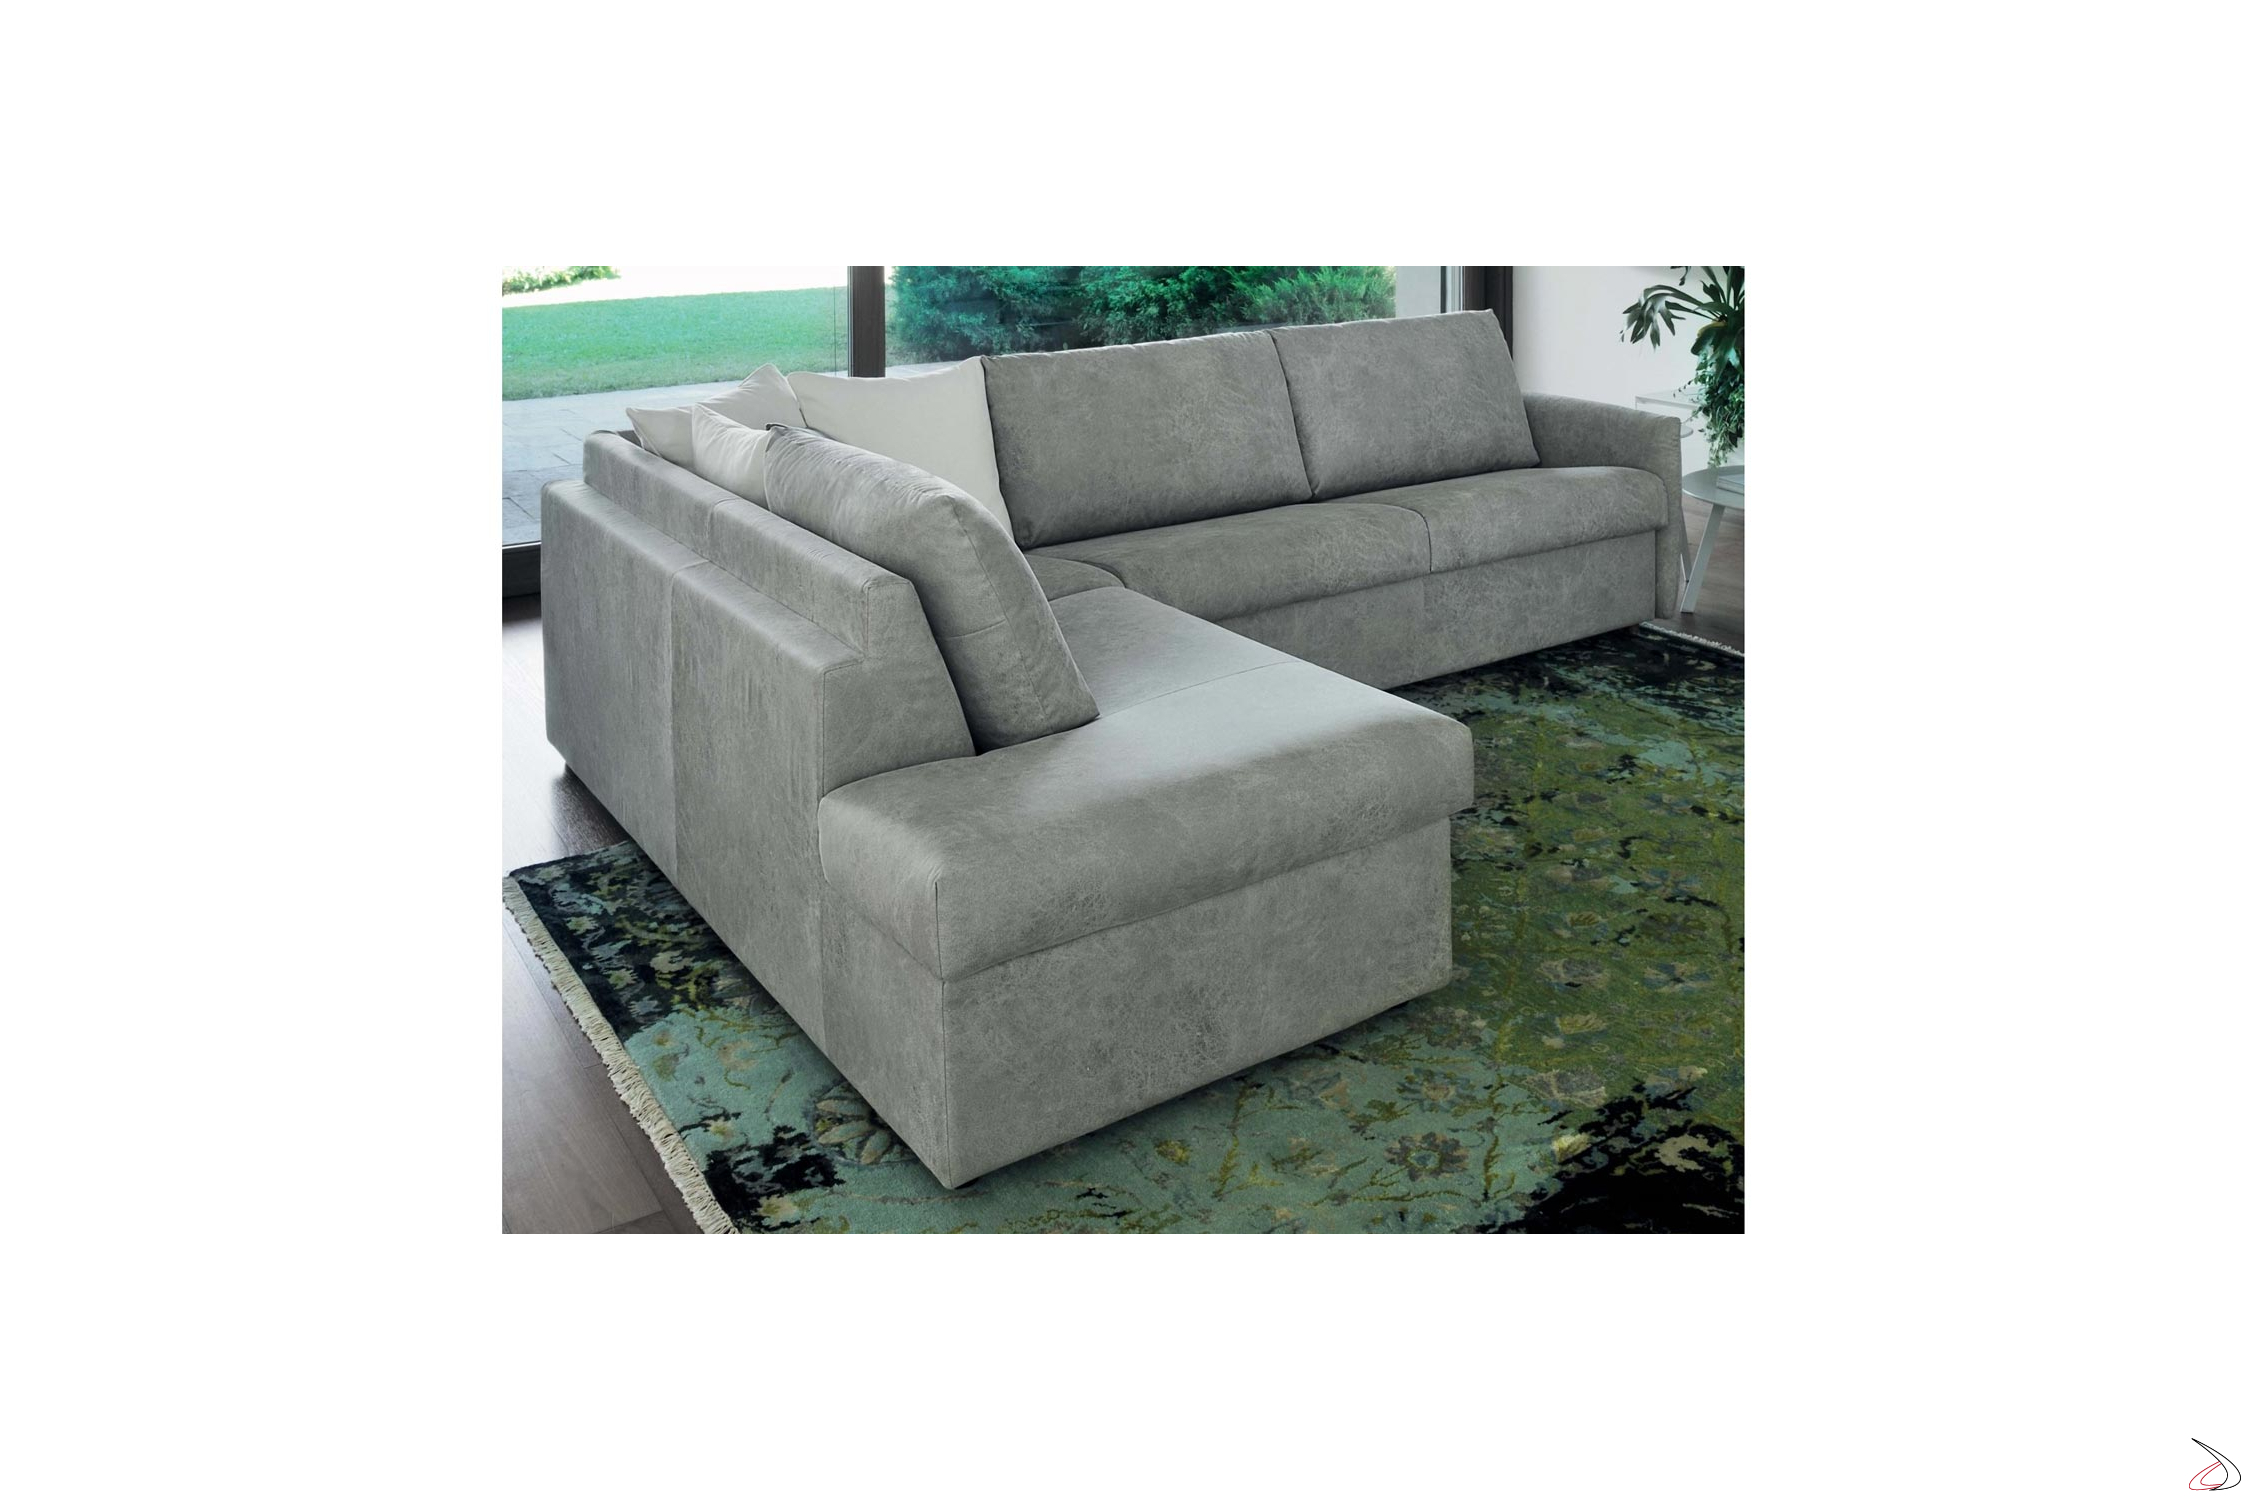 Divano Letto Con Chaise Longue.Alvise Sofa Bed With Chaise Lounge Toparredi Arredo Design Online